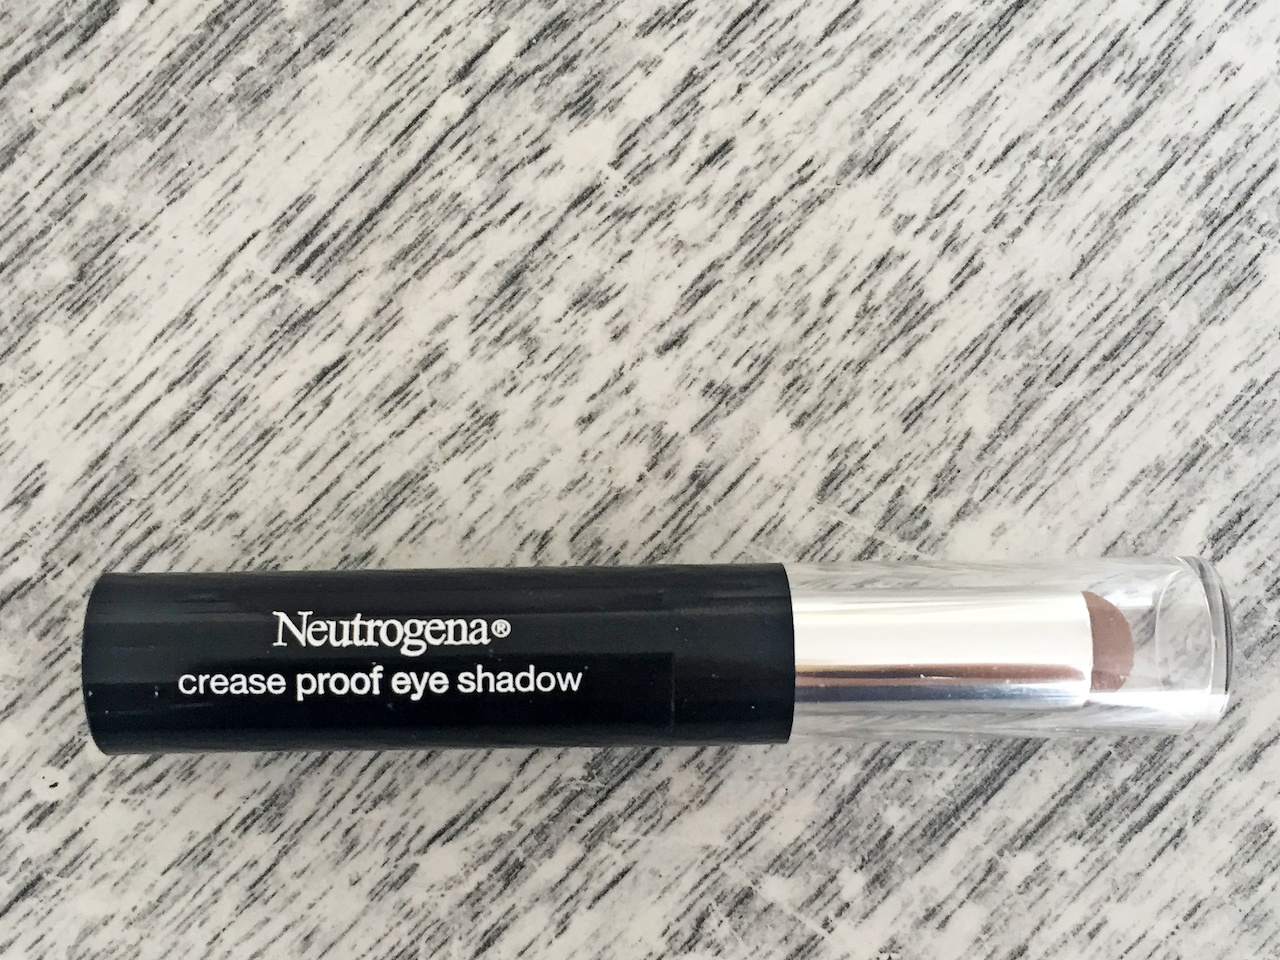 Safe for sensitive eyes, the Neutrogena Crease Proof Eye Shadow brightens eyes without creasing, fading or smudging.